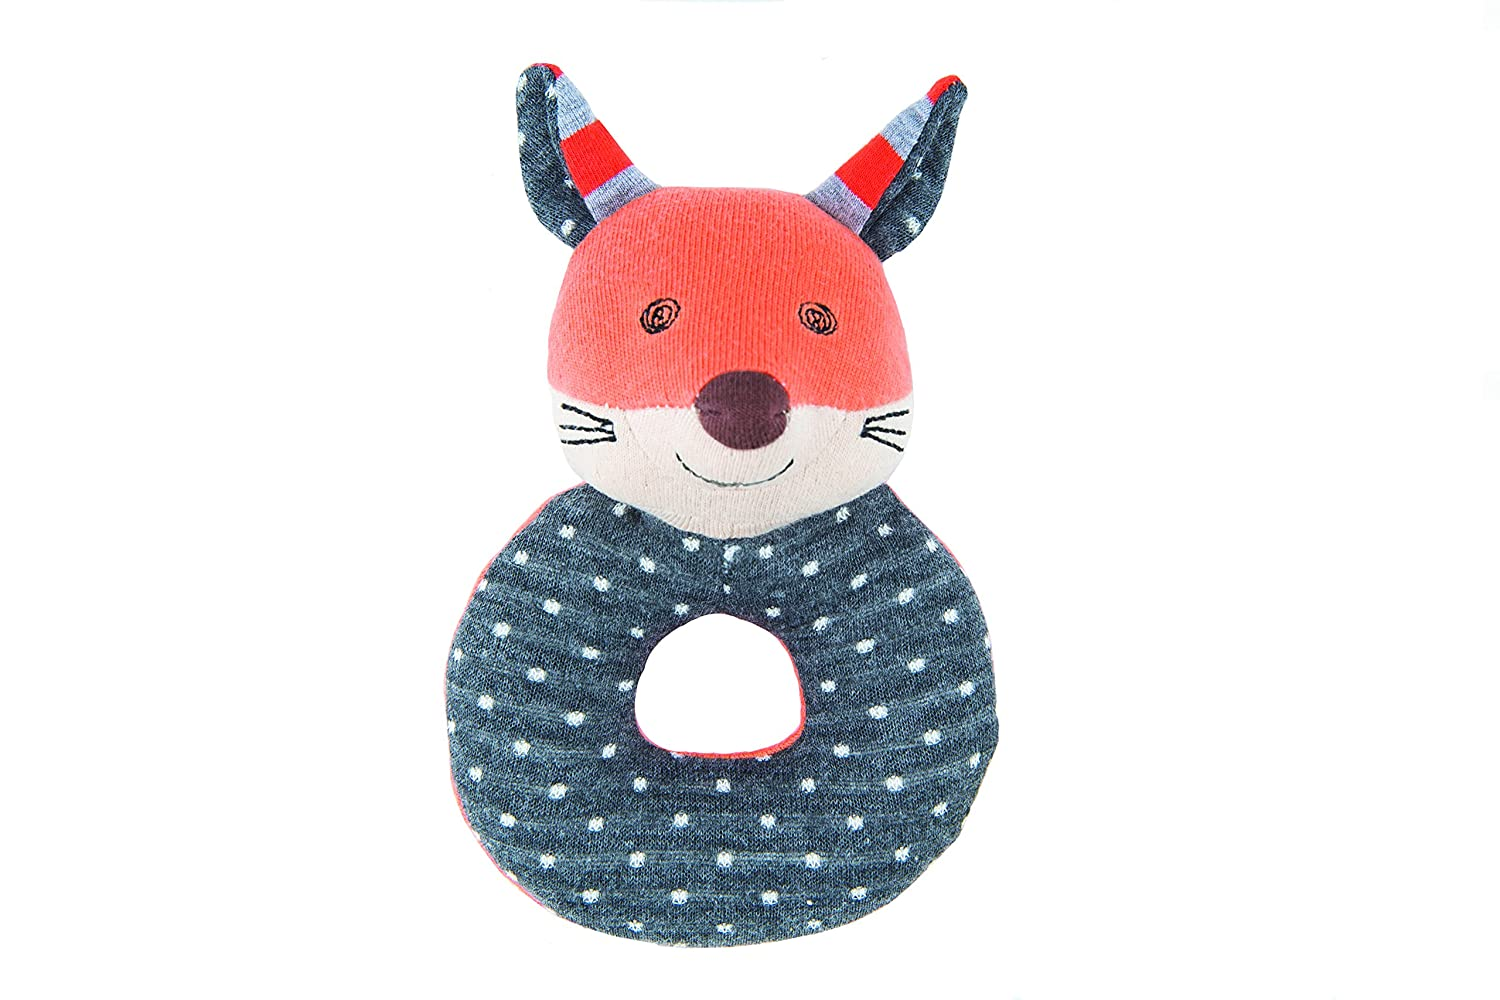 Apple Park Organic Farm Buddies - Frenchy Fox Teething Rattle, Baby Toy for Infants - Hypoallergenic, 100% Organic Cotton